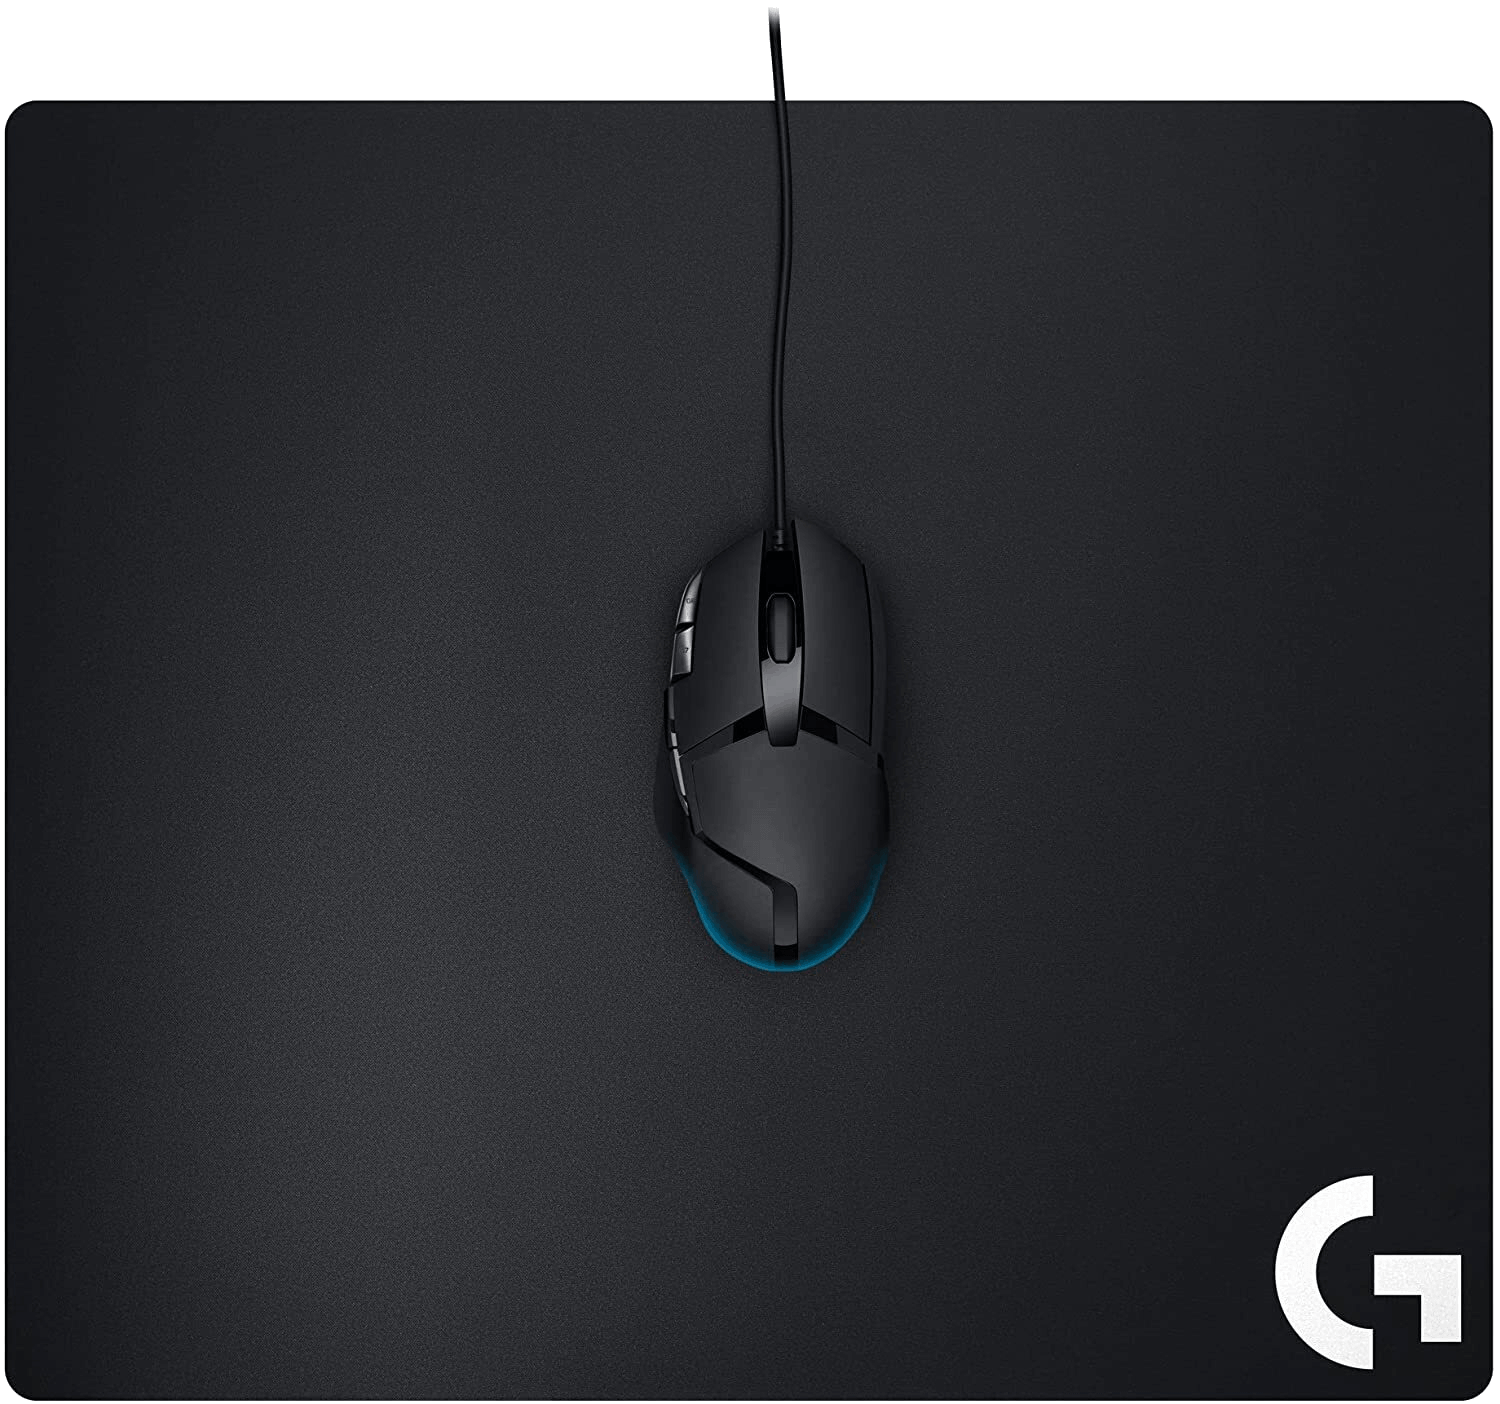 Find the right sensitivity for gaming